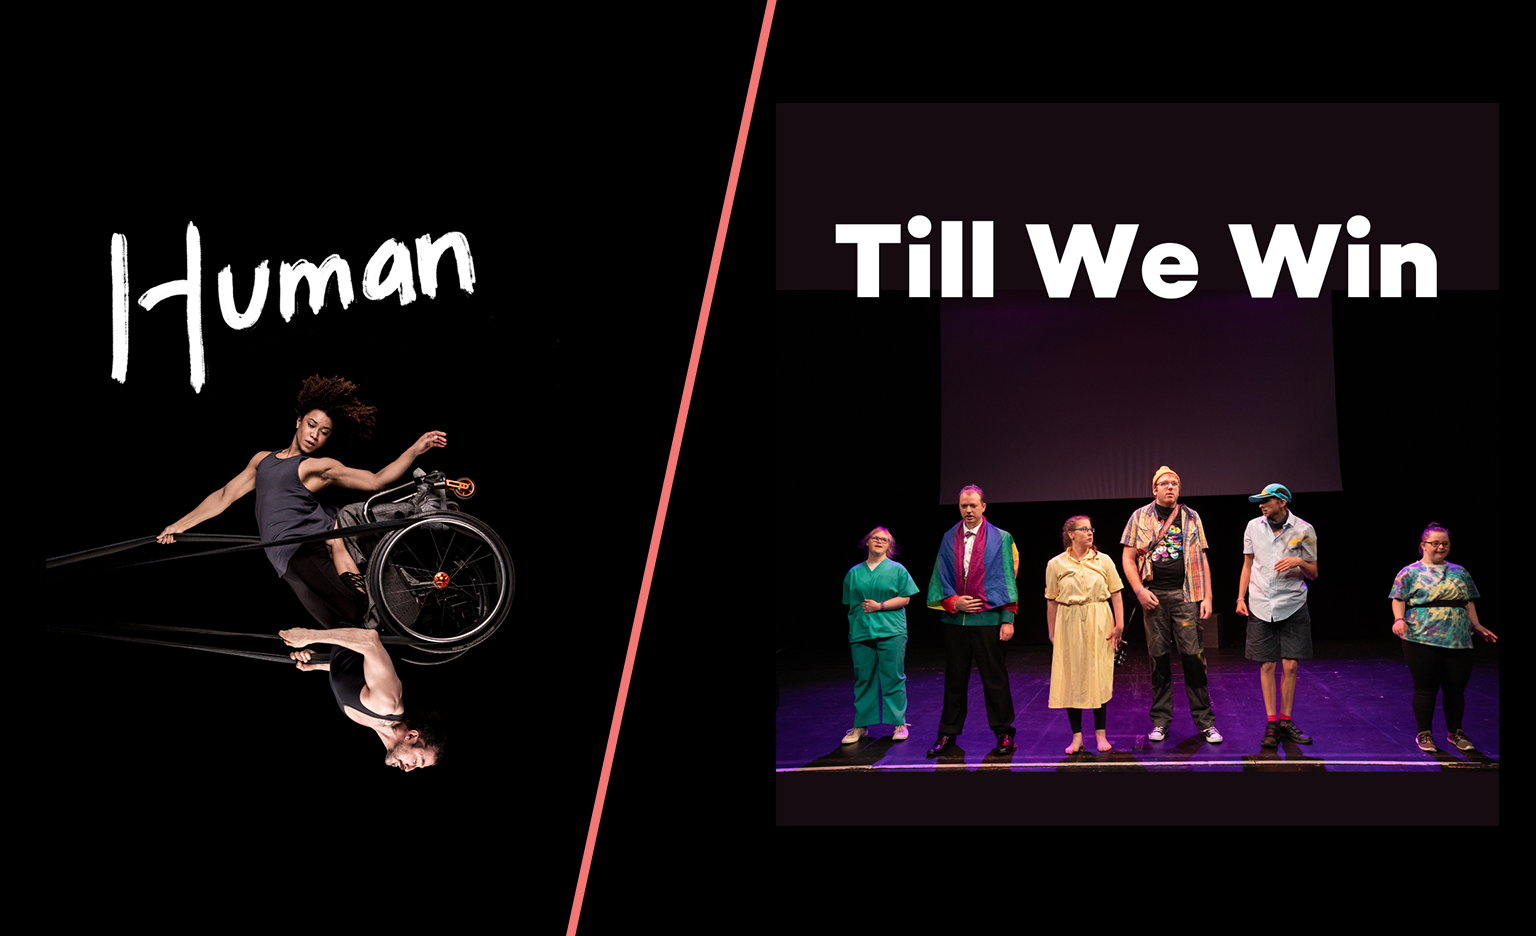 """Two images. On the left: Black background. A photo of a woman and a man swinging in the air like a pendulum, looking powerful and graceful. They share a wheelchair which is held up in the air by black circus straps. She has frizzy brown hair, muscular arms and wears a grey tank top She is kneeling on his thighs and one of her arms holds the straps above her head while the other points down towards the floor. He has a neatly trimmed brown beard, muscular arms and wears a black tank top. He holds the straps to the sides of his chest with both hands. The image captures them at the highest point of the swing, to our right, bringing the man to an upside- down position with the woman above him. Their bodies are doing something hard, but their strength makes it look effortless. One word written in white, thick, brush-style letters above the photo: 'Human'. On the right: A group of young people stand together on stage. One is dressed as a doctor. To their left, another is dressed as a hotel valet. To their left, a person is wearing a yellow dress and glasses. To their left, another is wearing a beanie hat and an orange checked-shirt over a black t-shirt. To their left, another is dressed as a postman. To their left, another is wearing a psychedelic pattern t-shirt and tight black leggings. Above the photo, strong, straight and bold white letters read: """"Till We Win""""."""